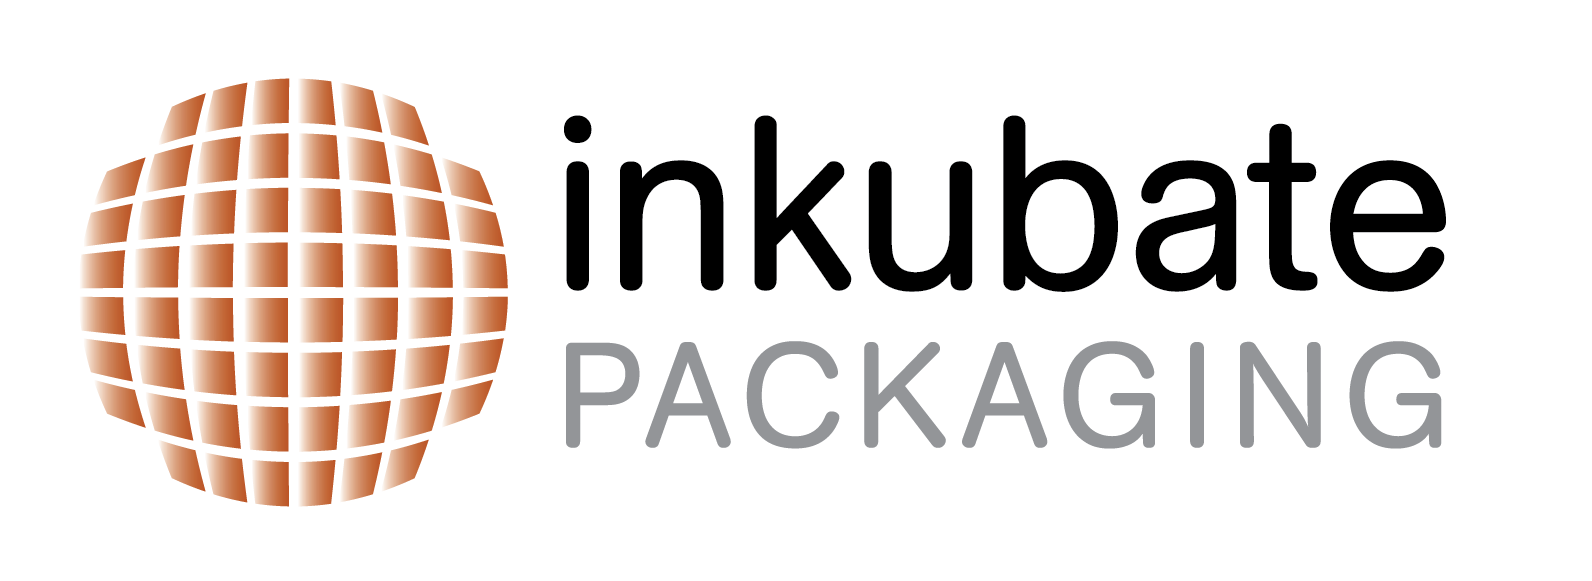 Inkubate Packaging